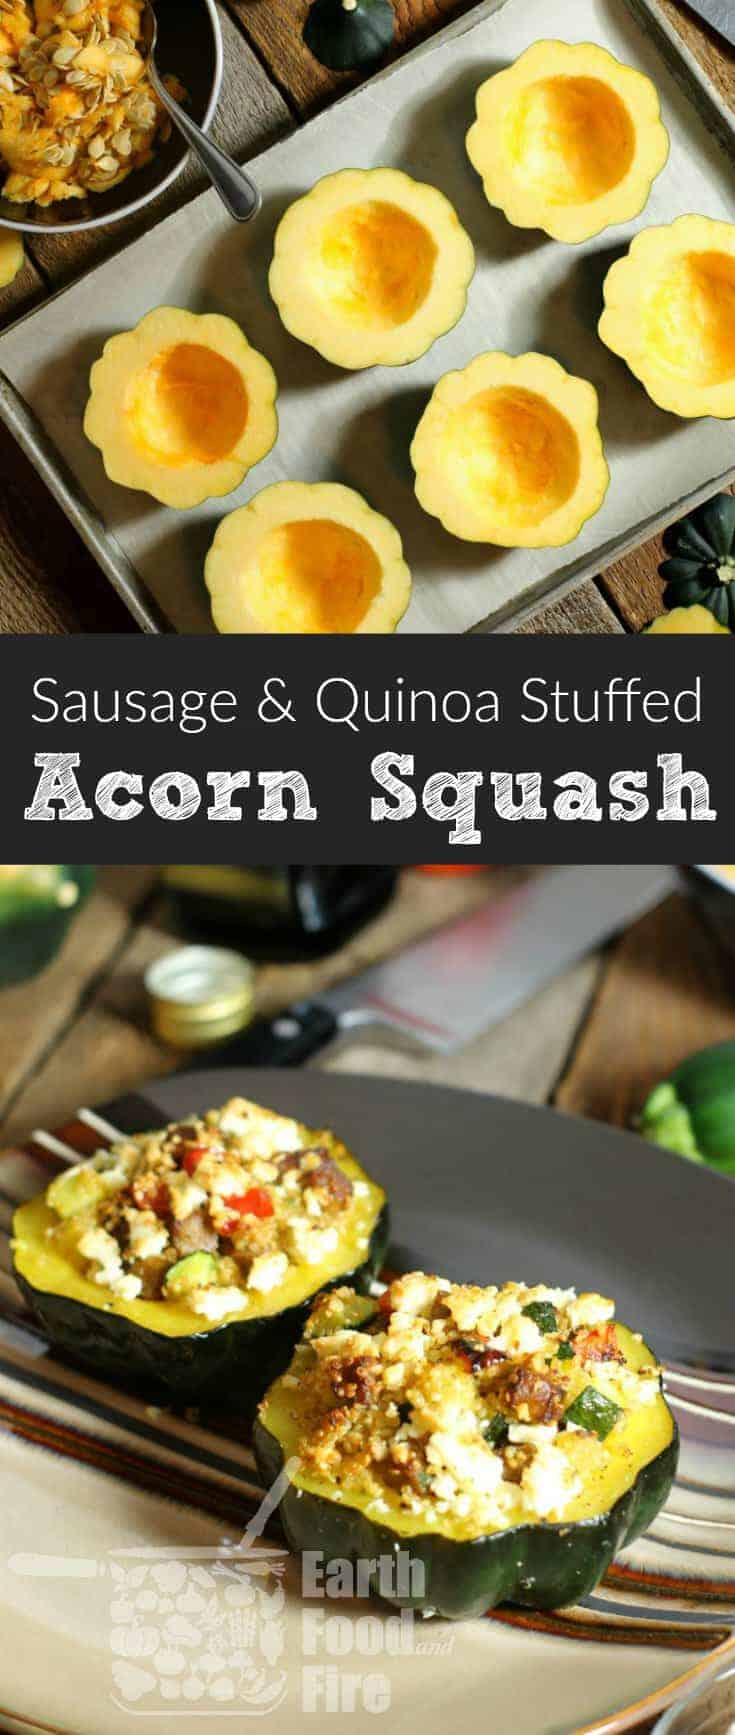 These quinoa and sausage stuffed acorn squash are a flavor packed and healthy 'all in one' meal. Perfect on their own or served at a family gathering or potluck. #acornsquash #stuffed #glutenfree #quinoa